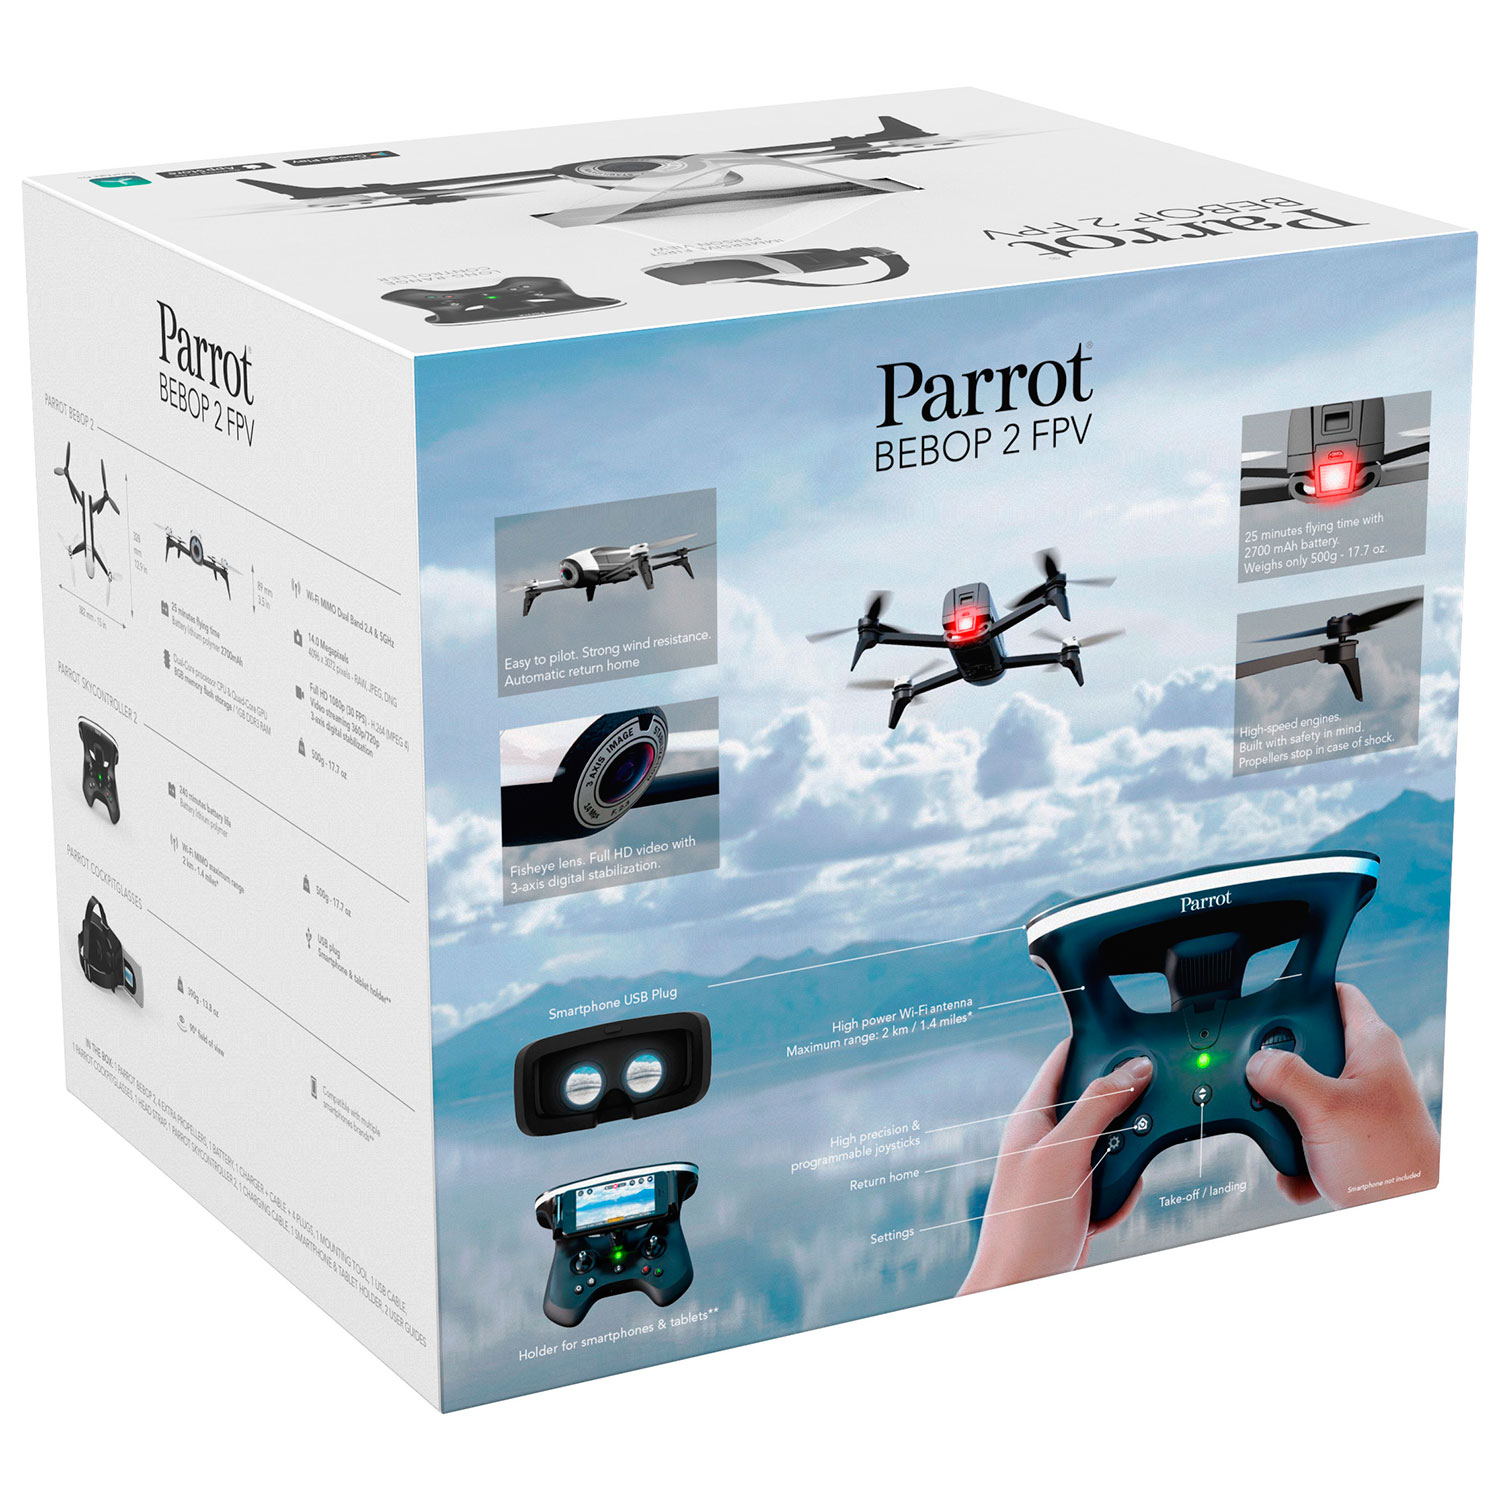 Parrot Bebop 2 Quadcopter Drone With Camera Fpv Controller Way Video Switch Ready To Fly Black White Drones Best Buy Canada